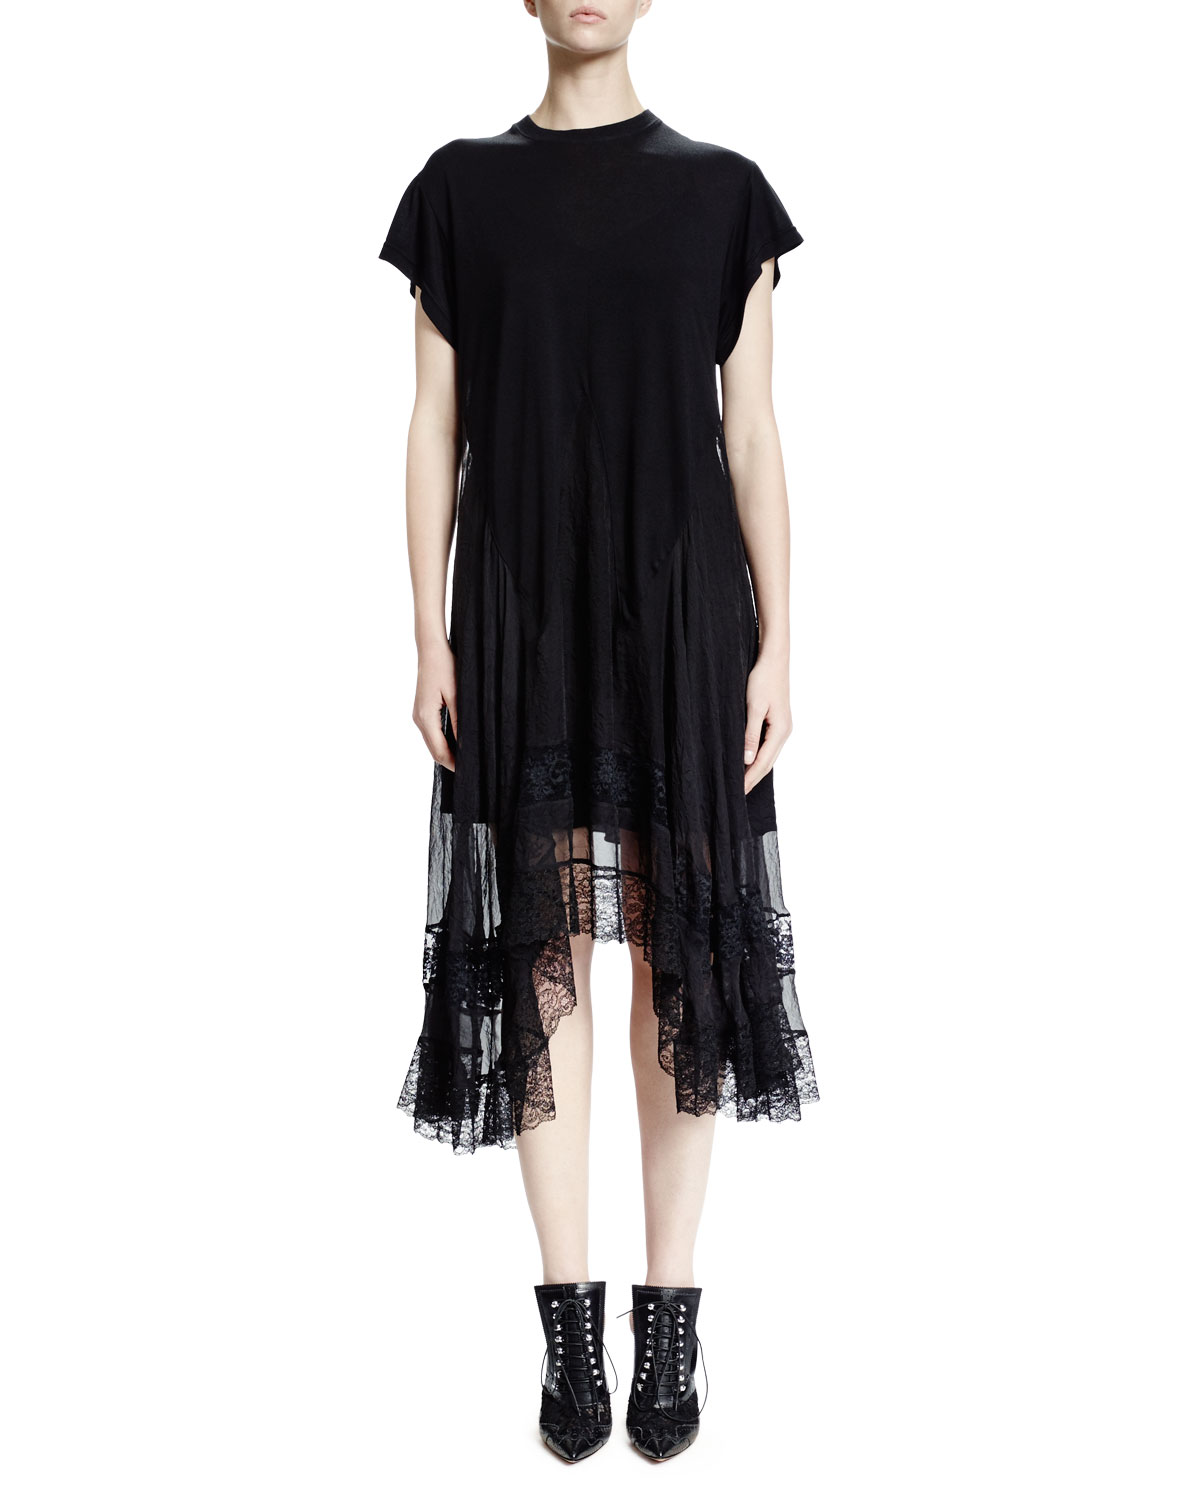 Short-Sleeve Asymmetric Lace-Trimmed Dress